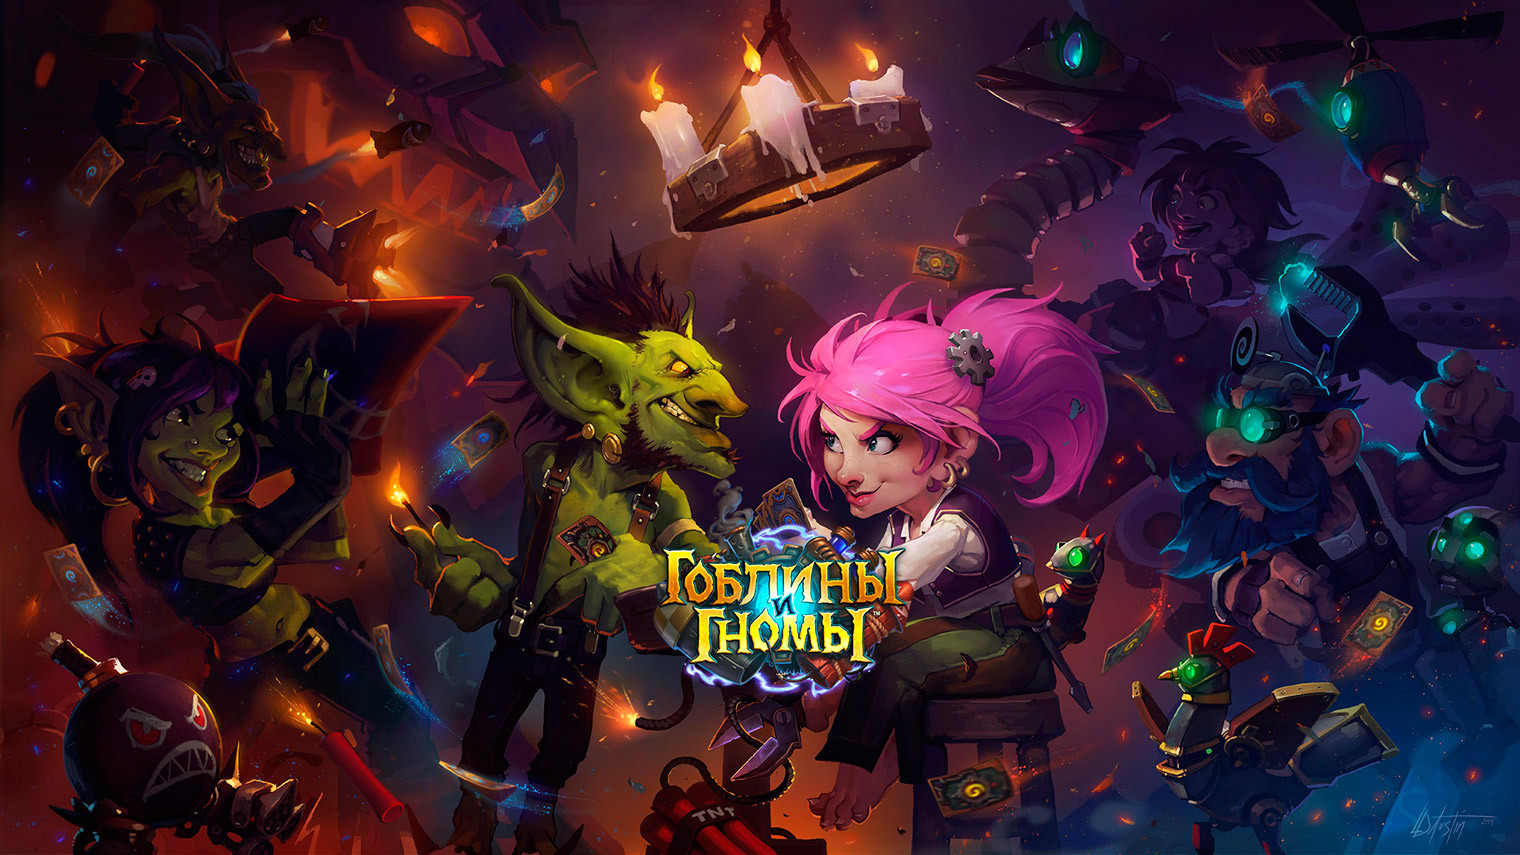 WoW goblin vs gnome cartoon images